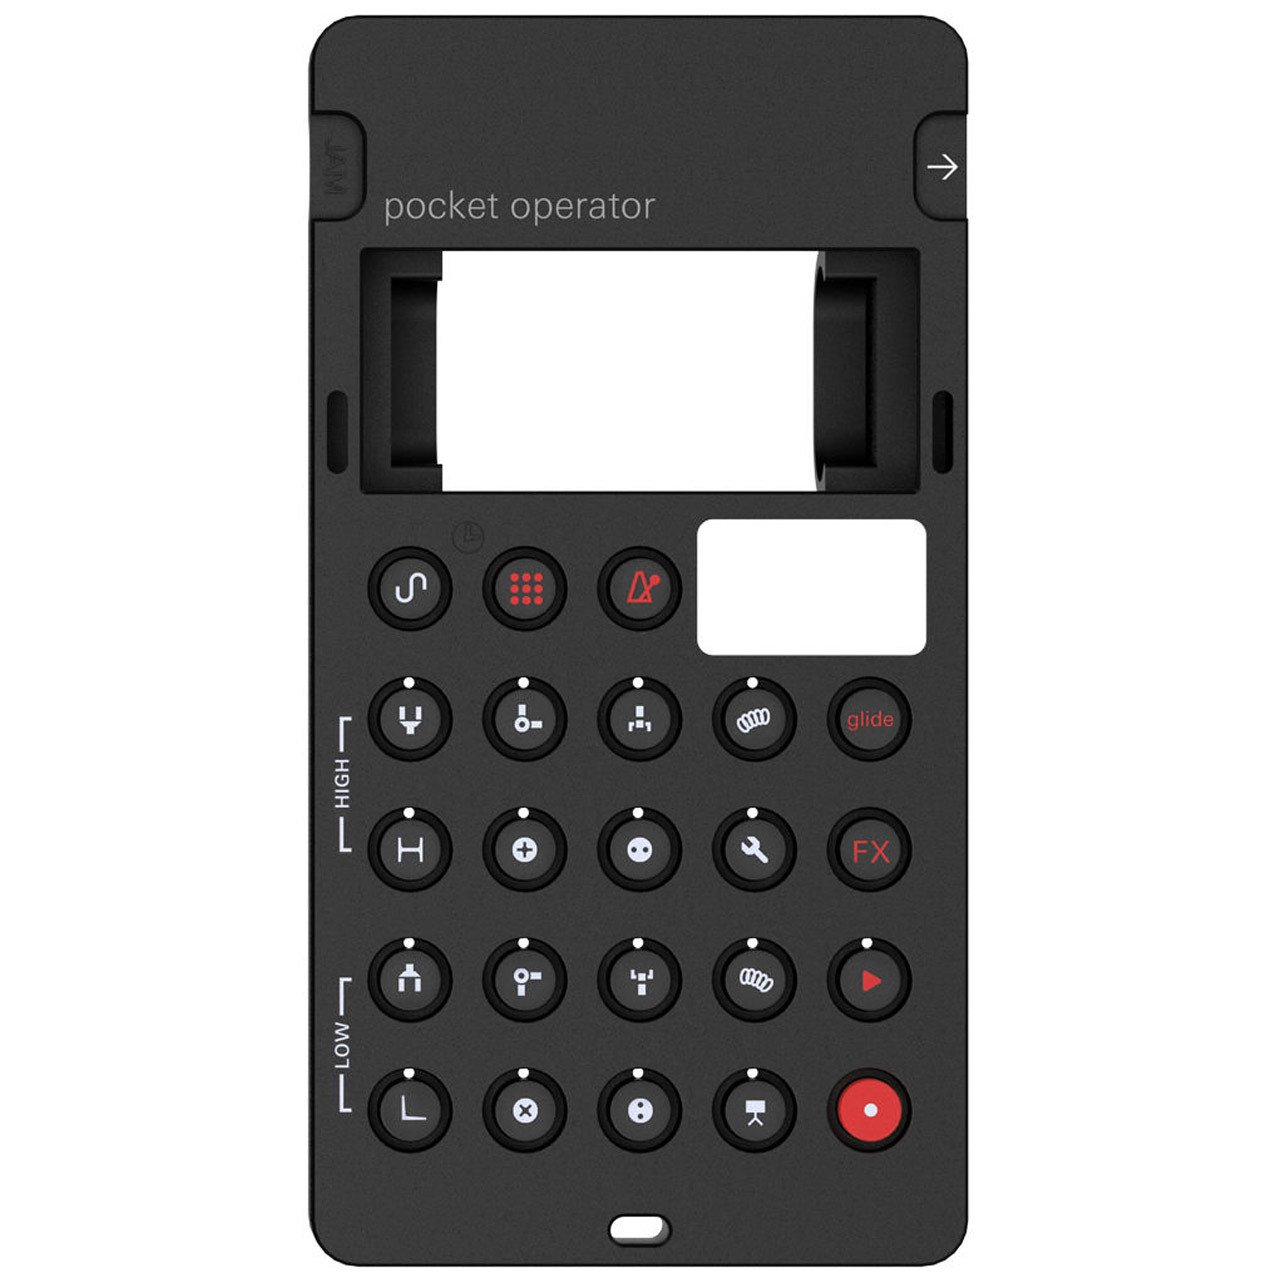 Keyboard Accessories - Teenage Engineering CA-28 Silicone Pro-case For PO-28 Pocket Operator